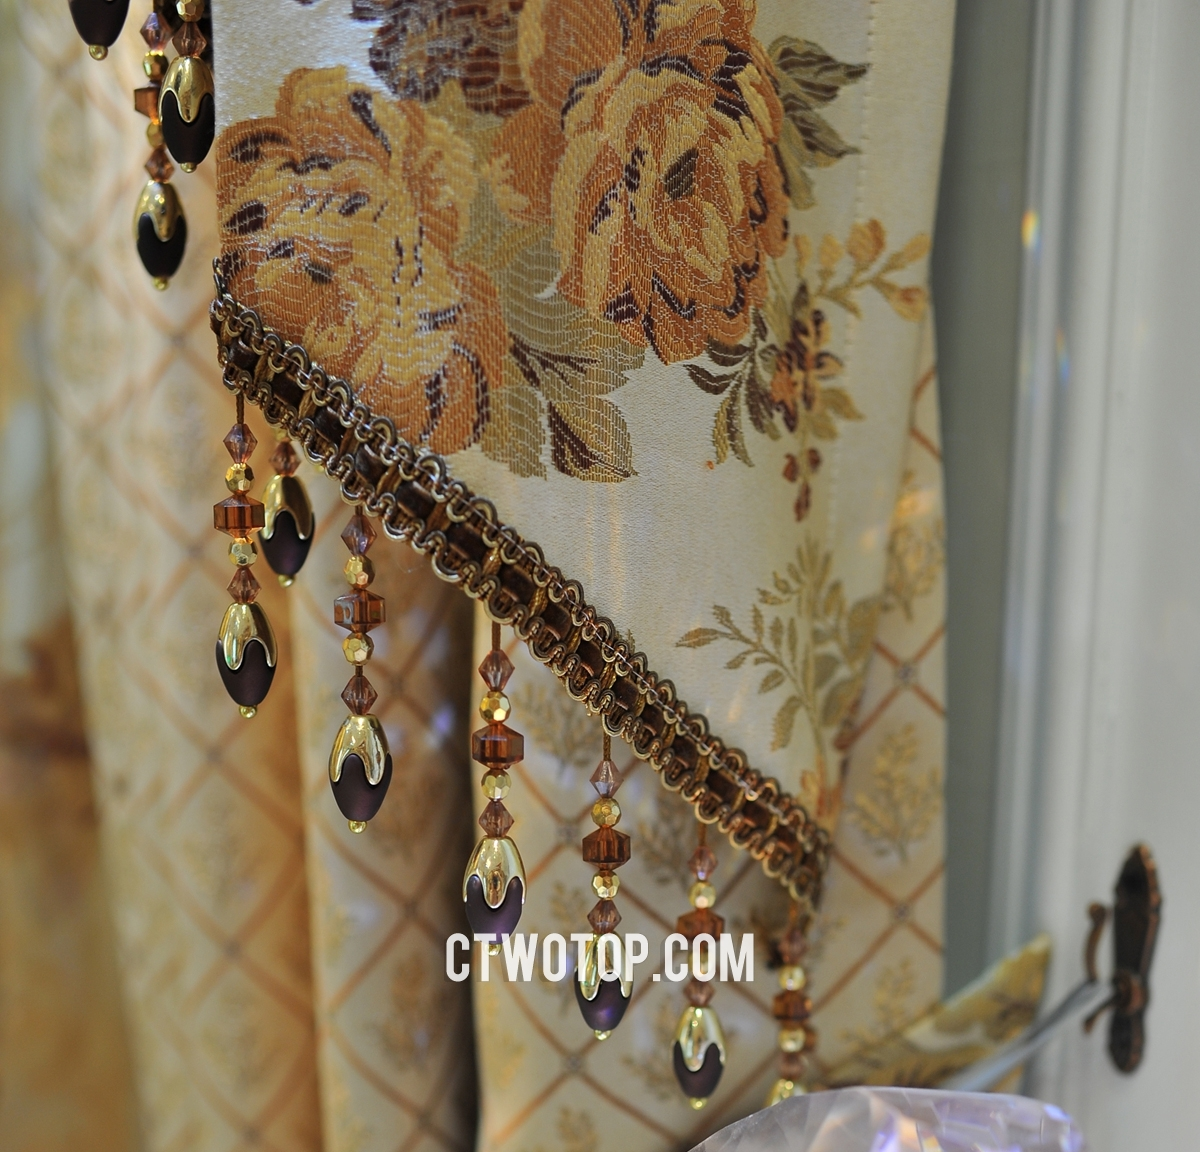 Floral Custom Vintage Swag Extended Length Curtains No Include With Regard To Extended Length Curtains (Image 12 of 15)